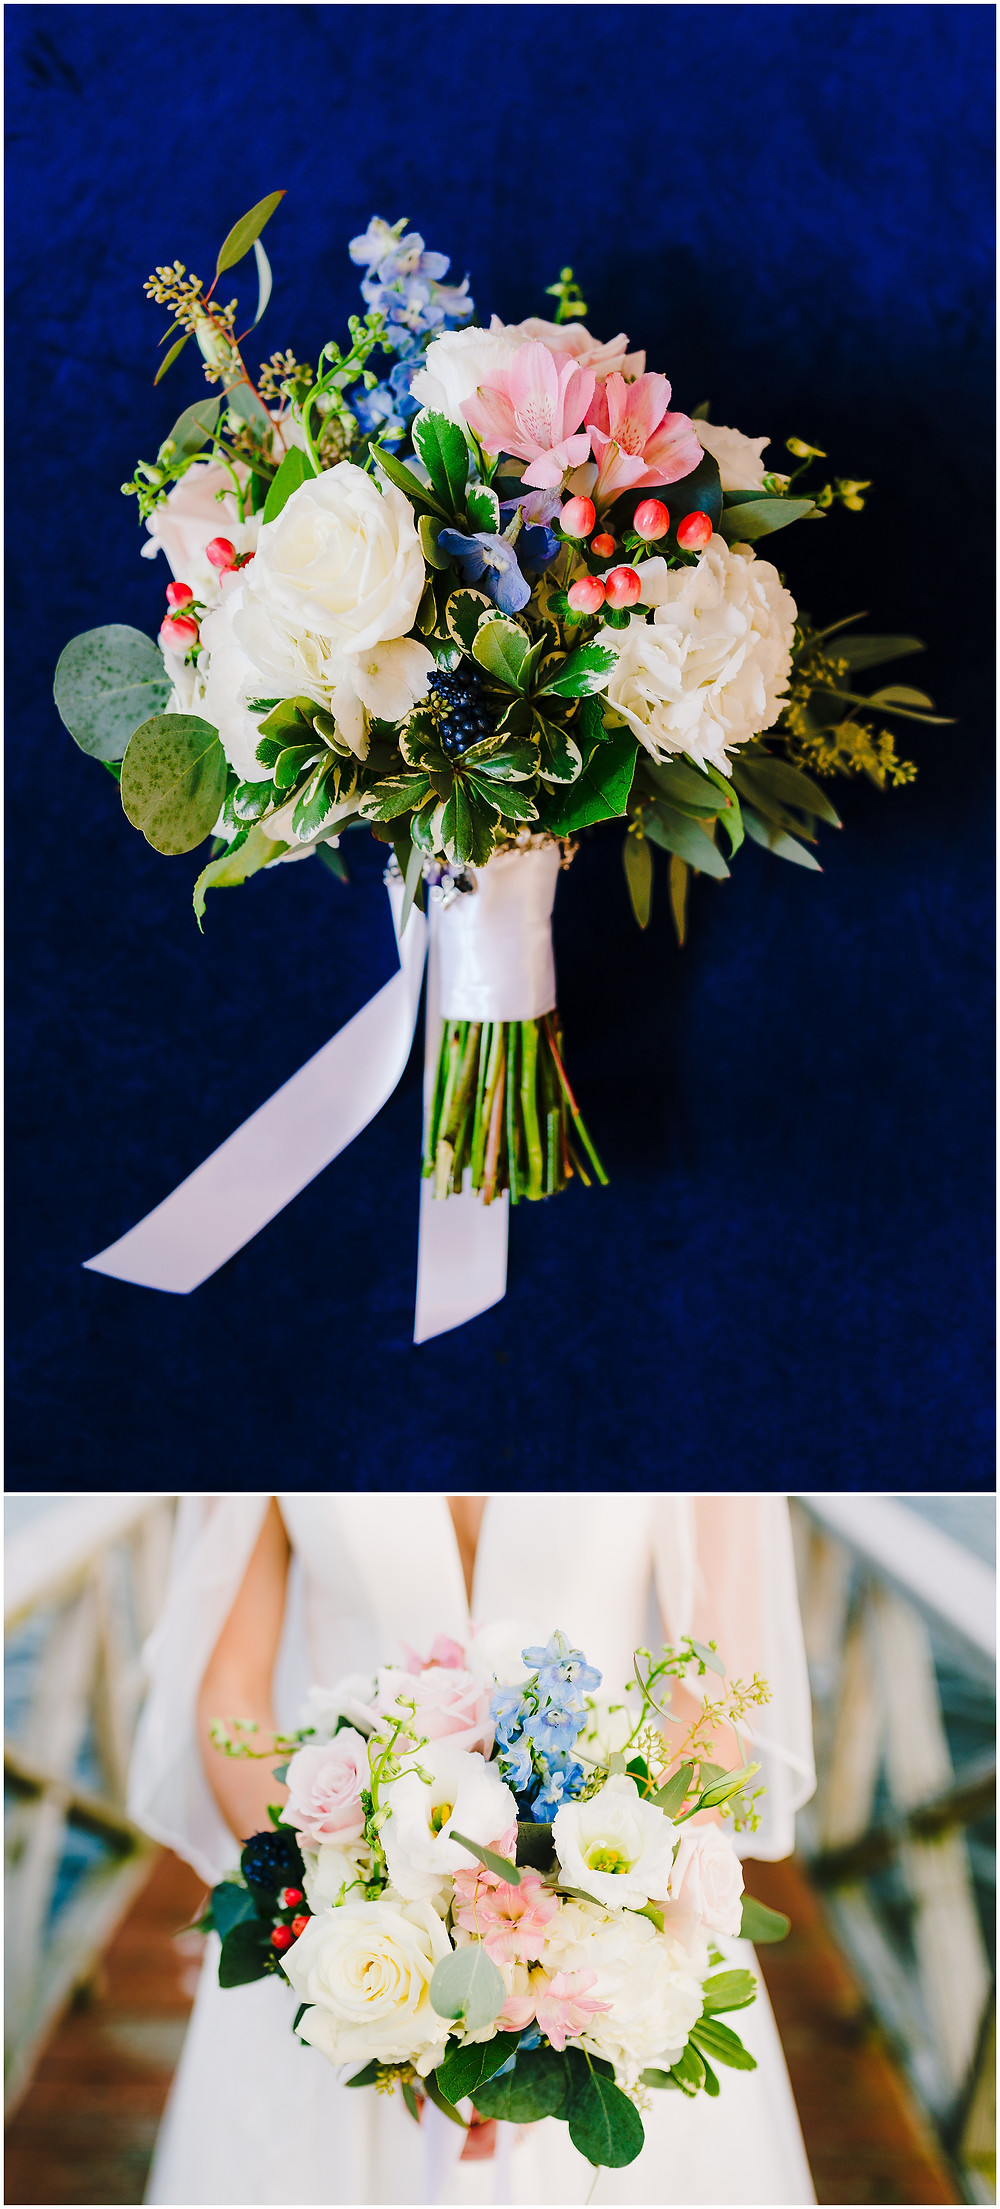 Wedding Details at Bohemia's Overlook, Maryland Wedding Photographer